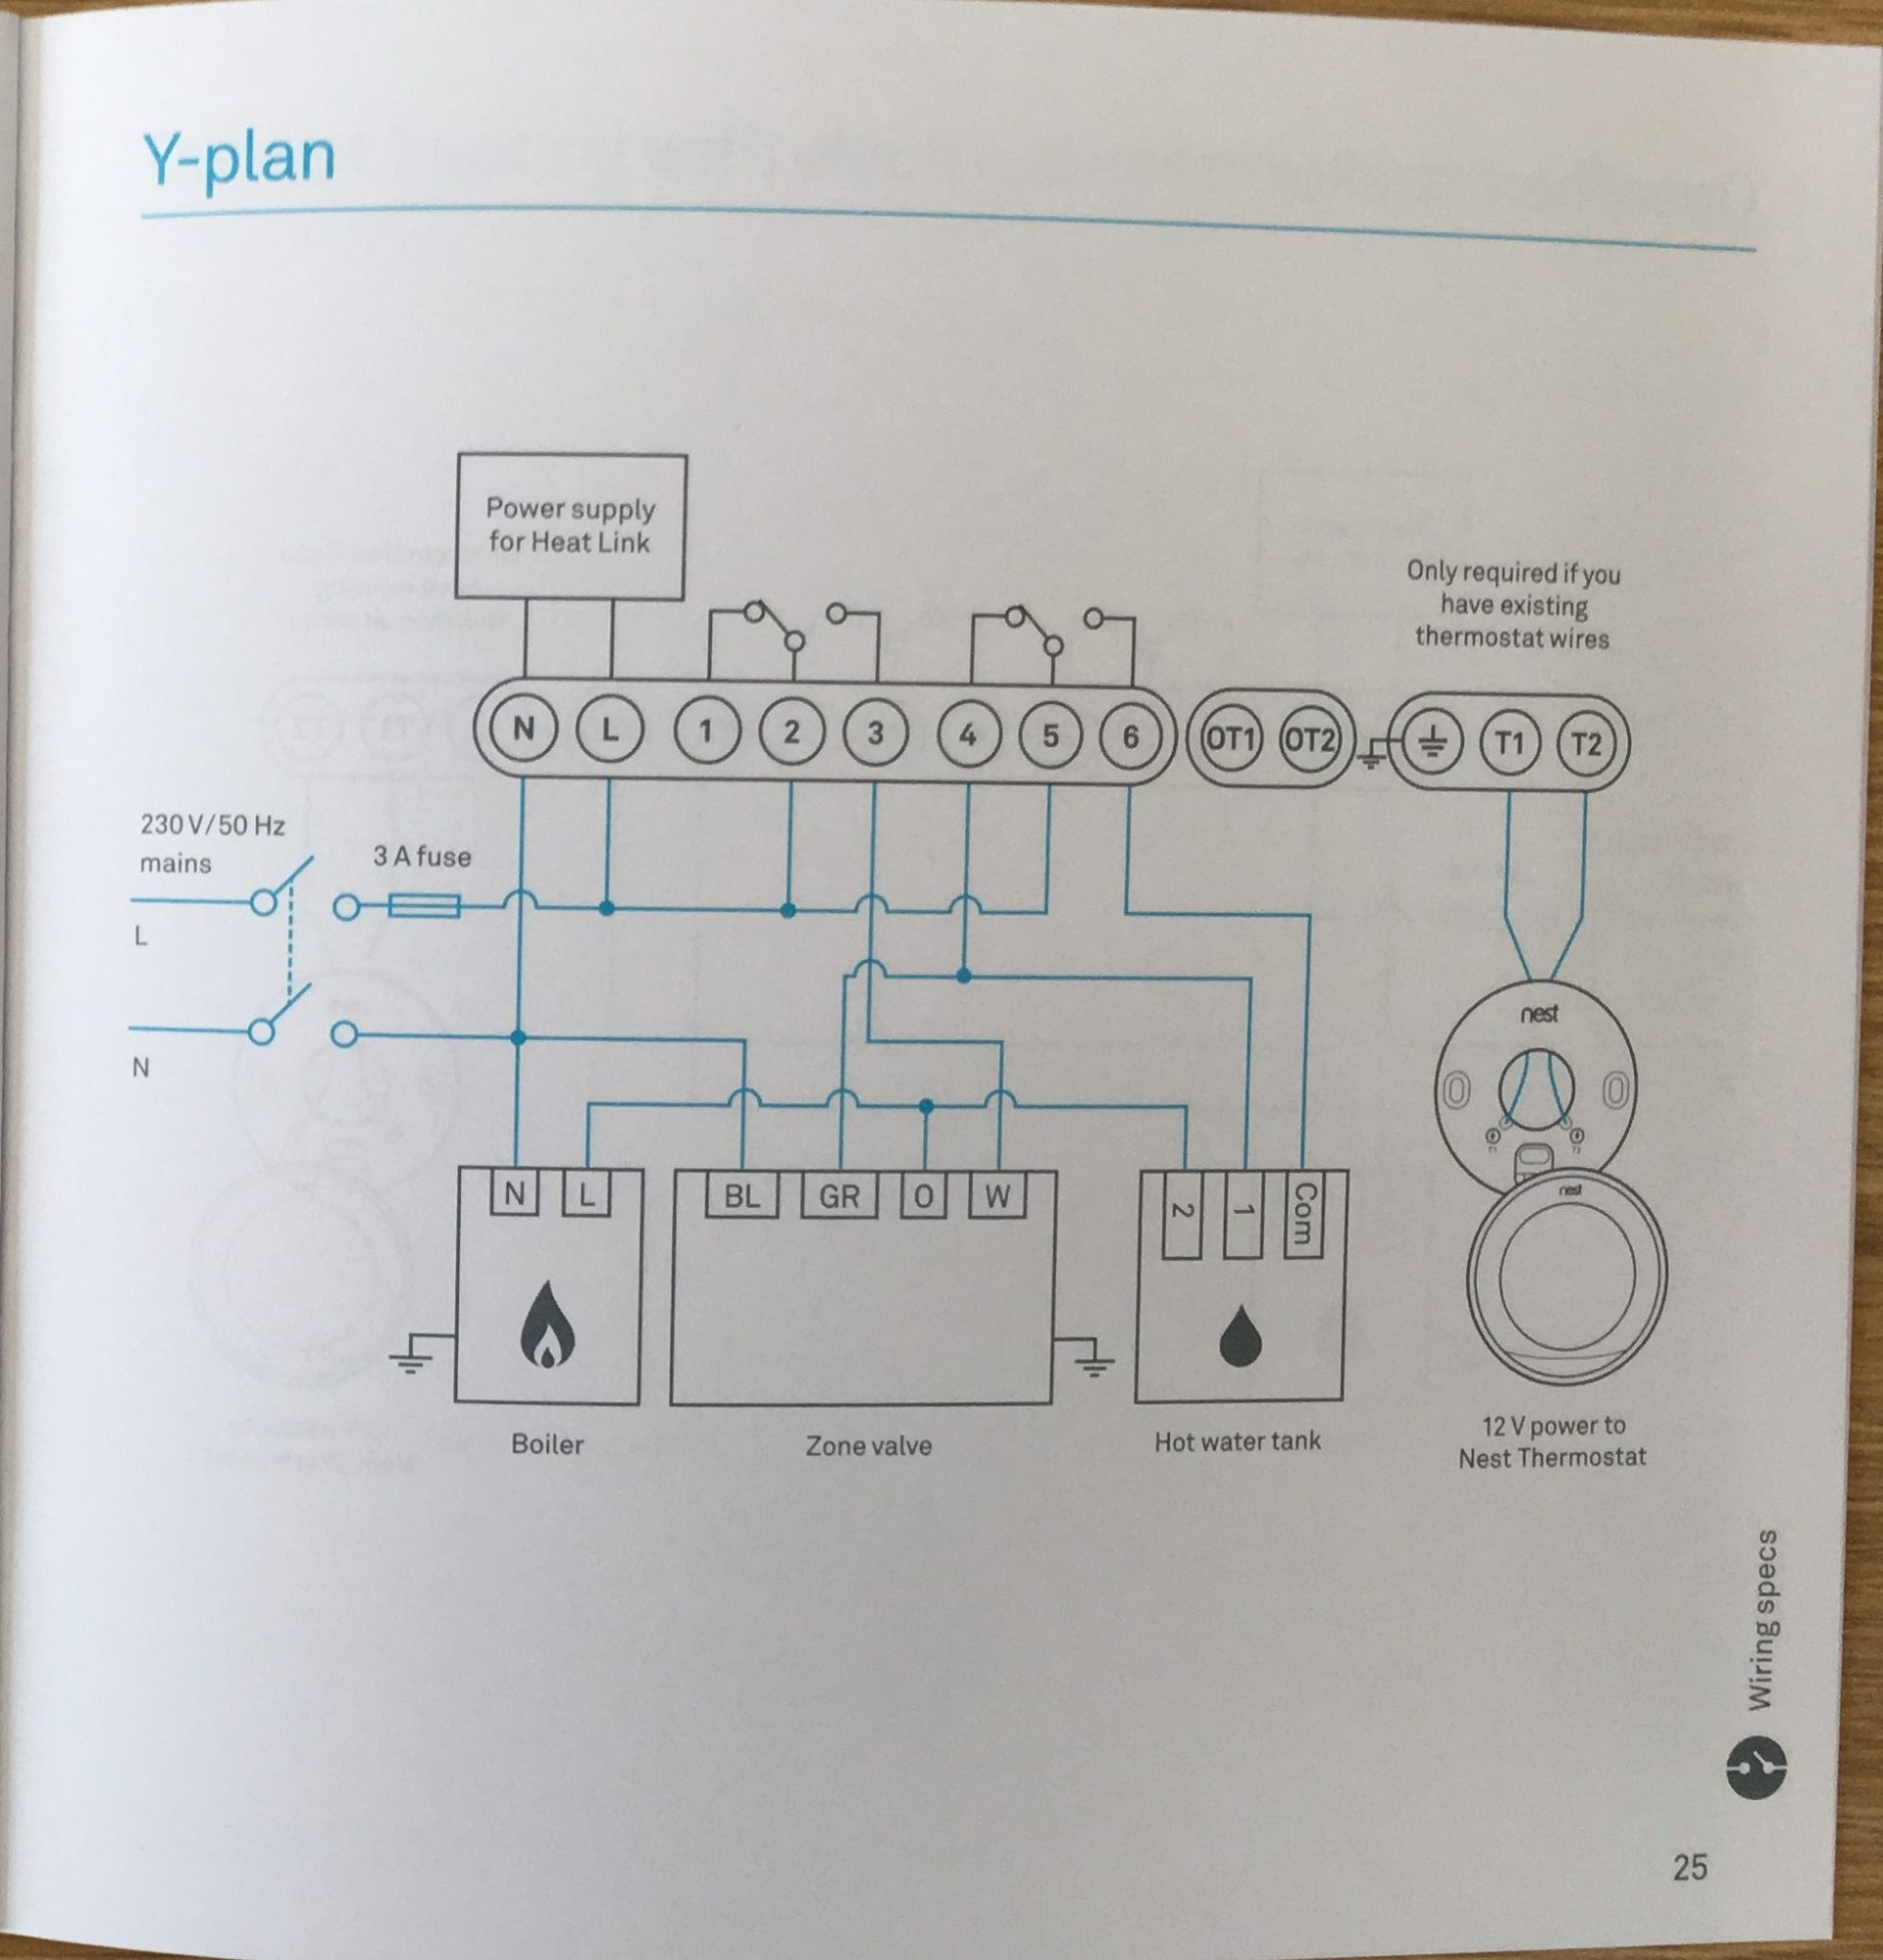 How To Install The Nest Learning Thermostat (3Rd Gen) In A Y-Plan - Nest Heating Control Wiring Diagram